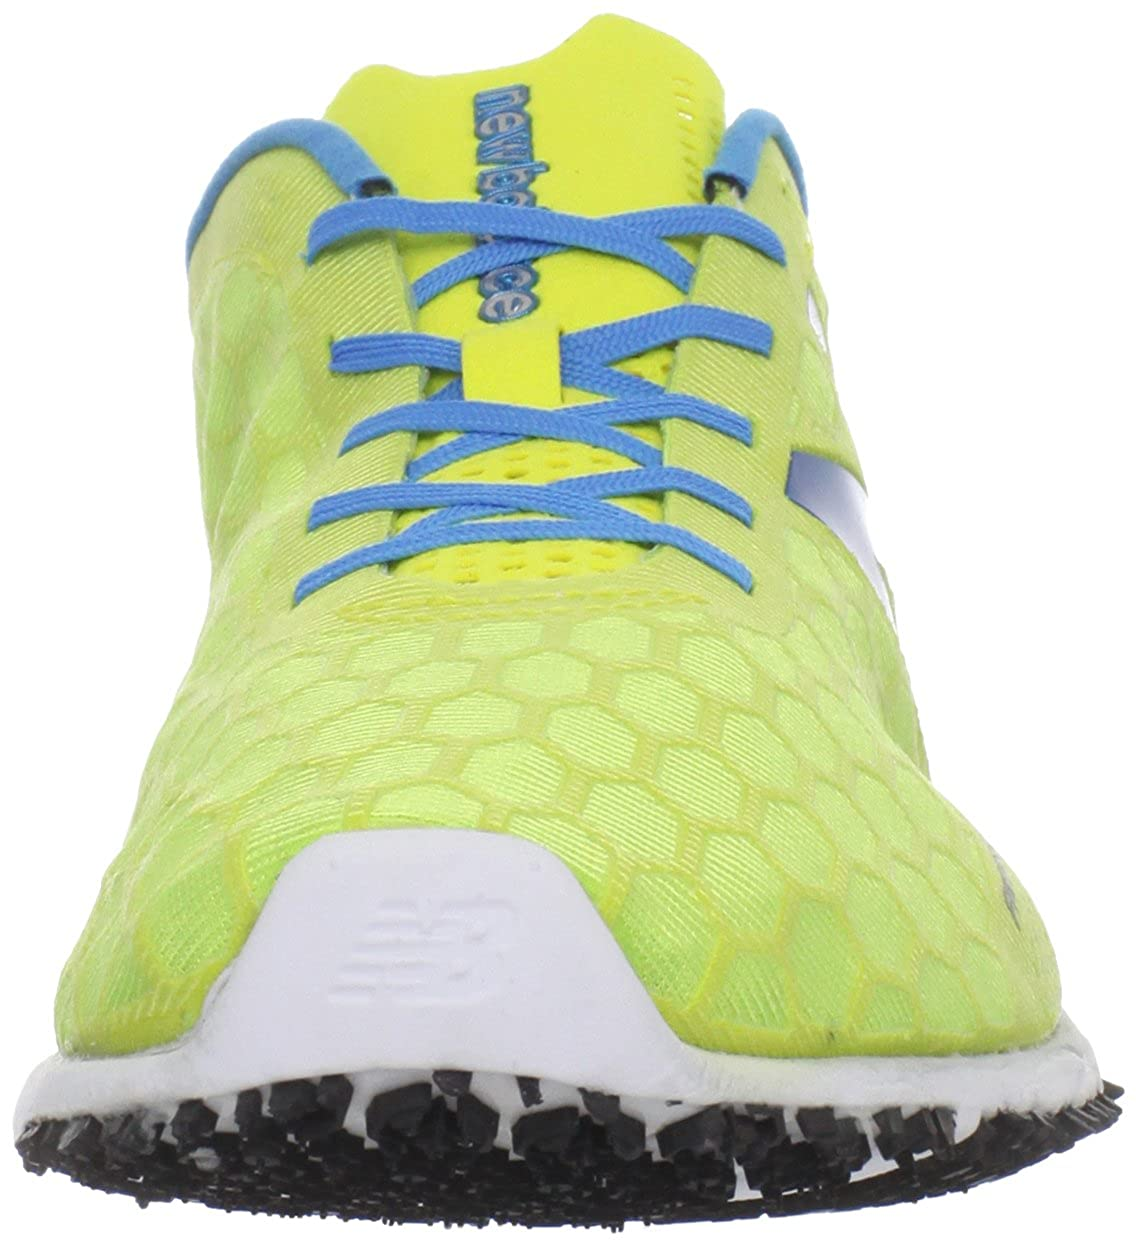 f92a160526a0c New Balance Men s Mrc5000y Trainers Yellow Size  12  Amazon.co.uk  Shoes    Bags